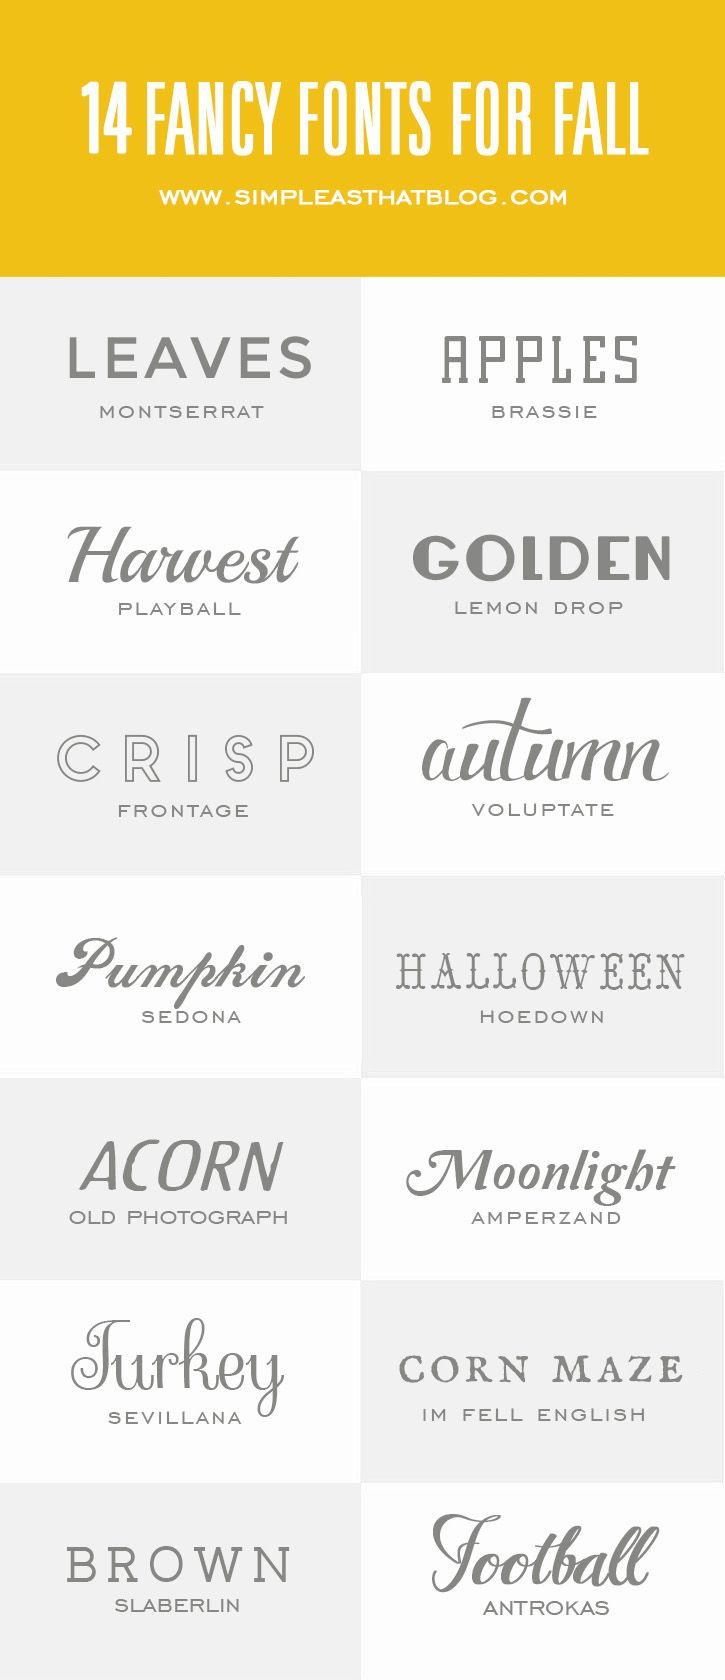 14 Fancy Fonts for Fall   simple as that